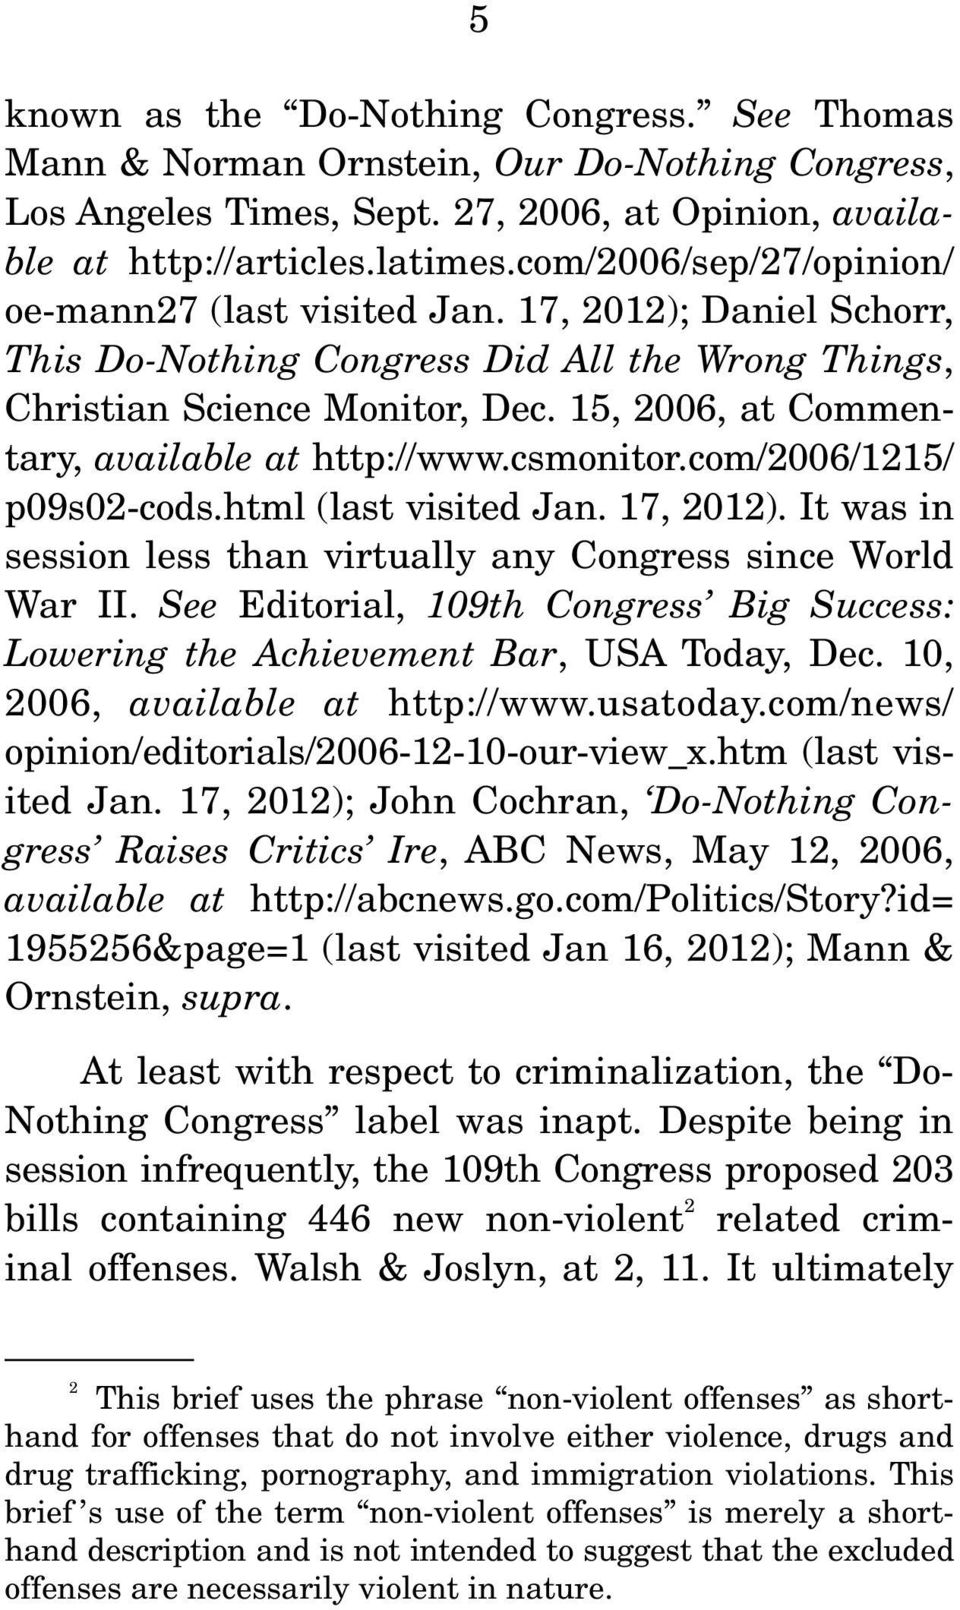 15, 2006, at Commentary, available at http://www.csmonitor.com/2006/1215/ p09s02-cods.html (last visited Jan. 17, 2012). It was in session less than virtually any Congress since World War II.